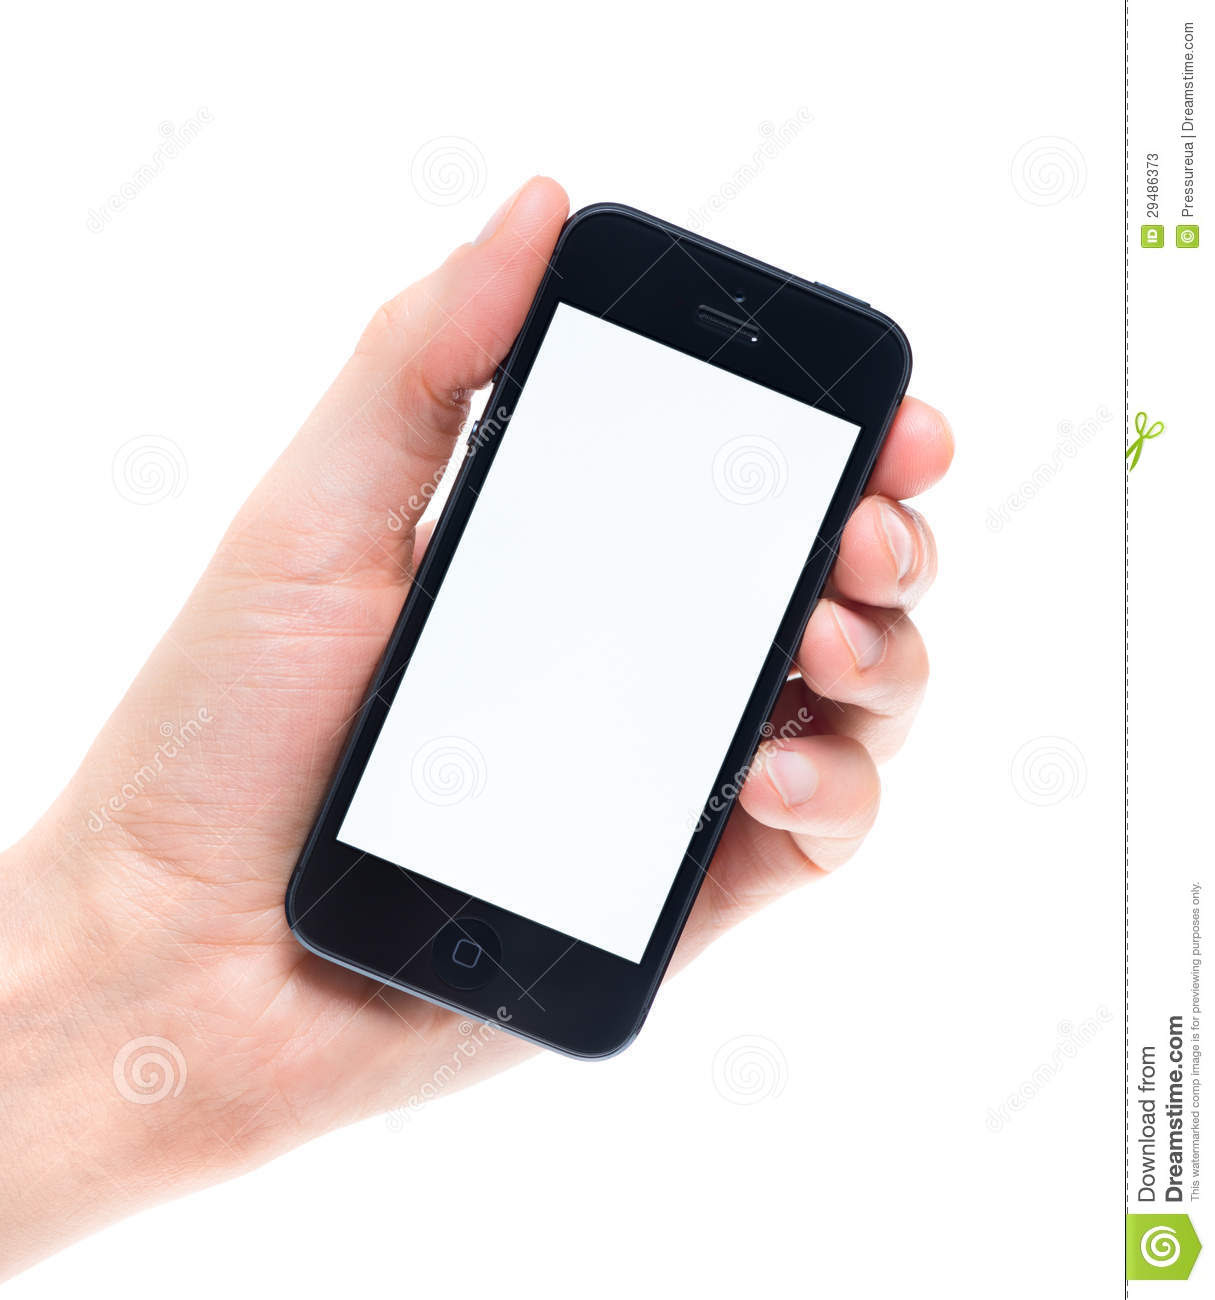 Blank Apple IPhone 5 In Hand Editorial Stock Photo - Image: 29486373